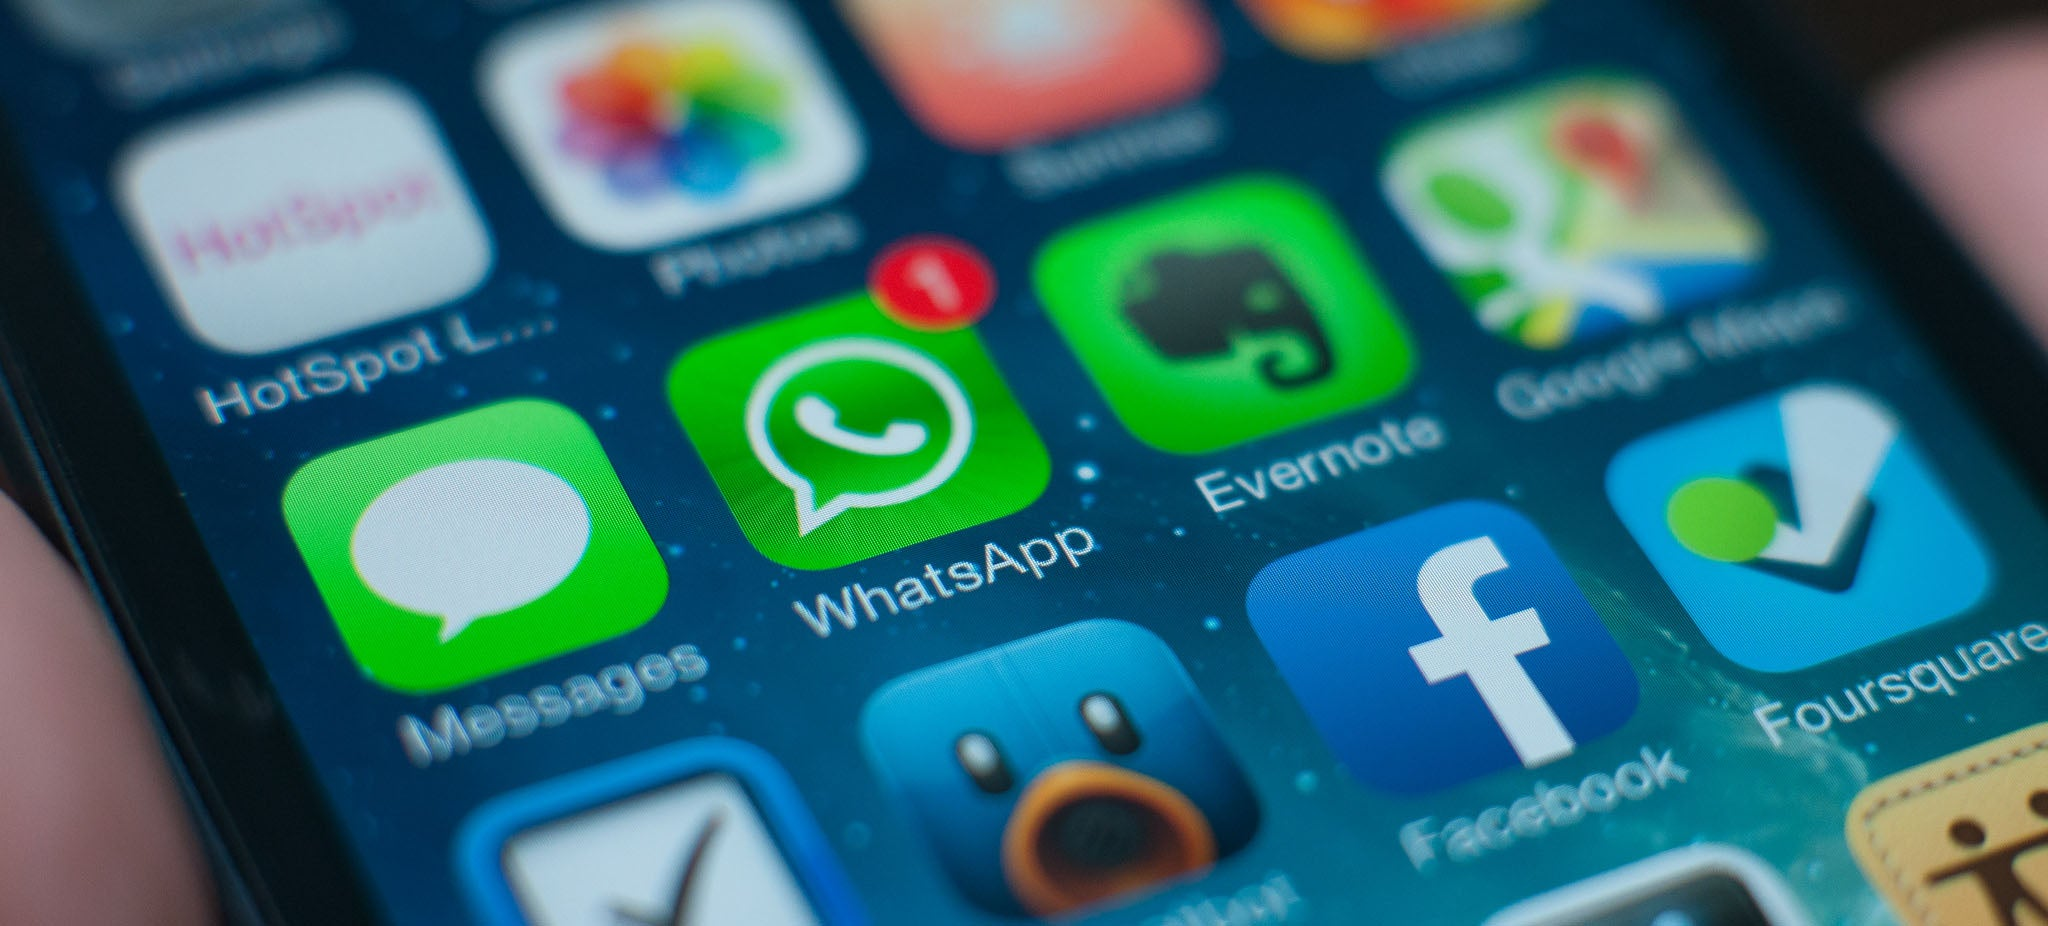 A Judge Shut Down WhatsApp For 100 Million People